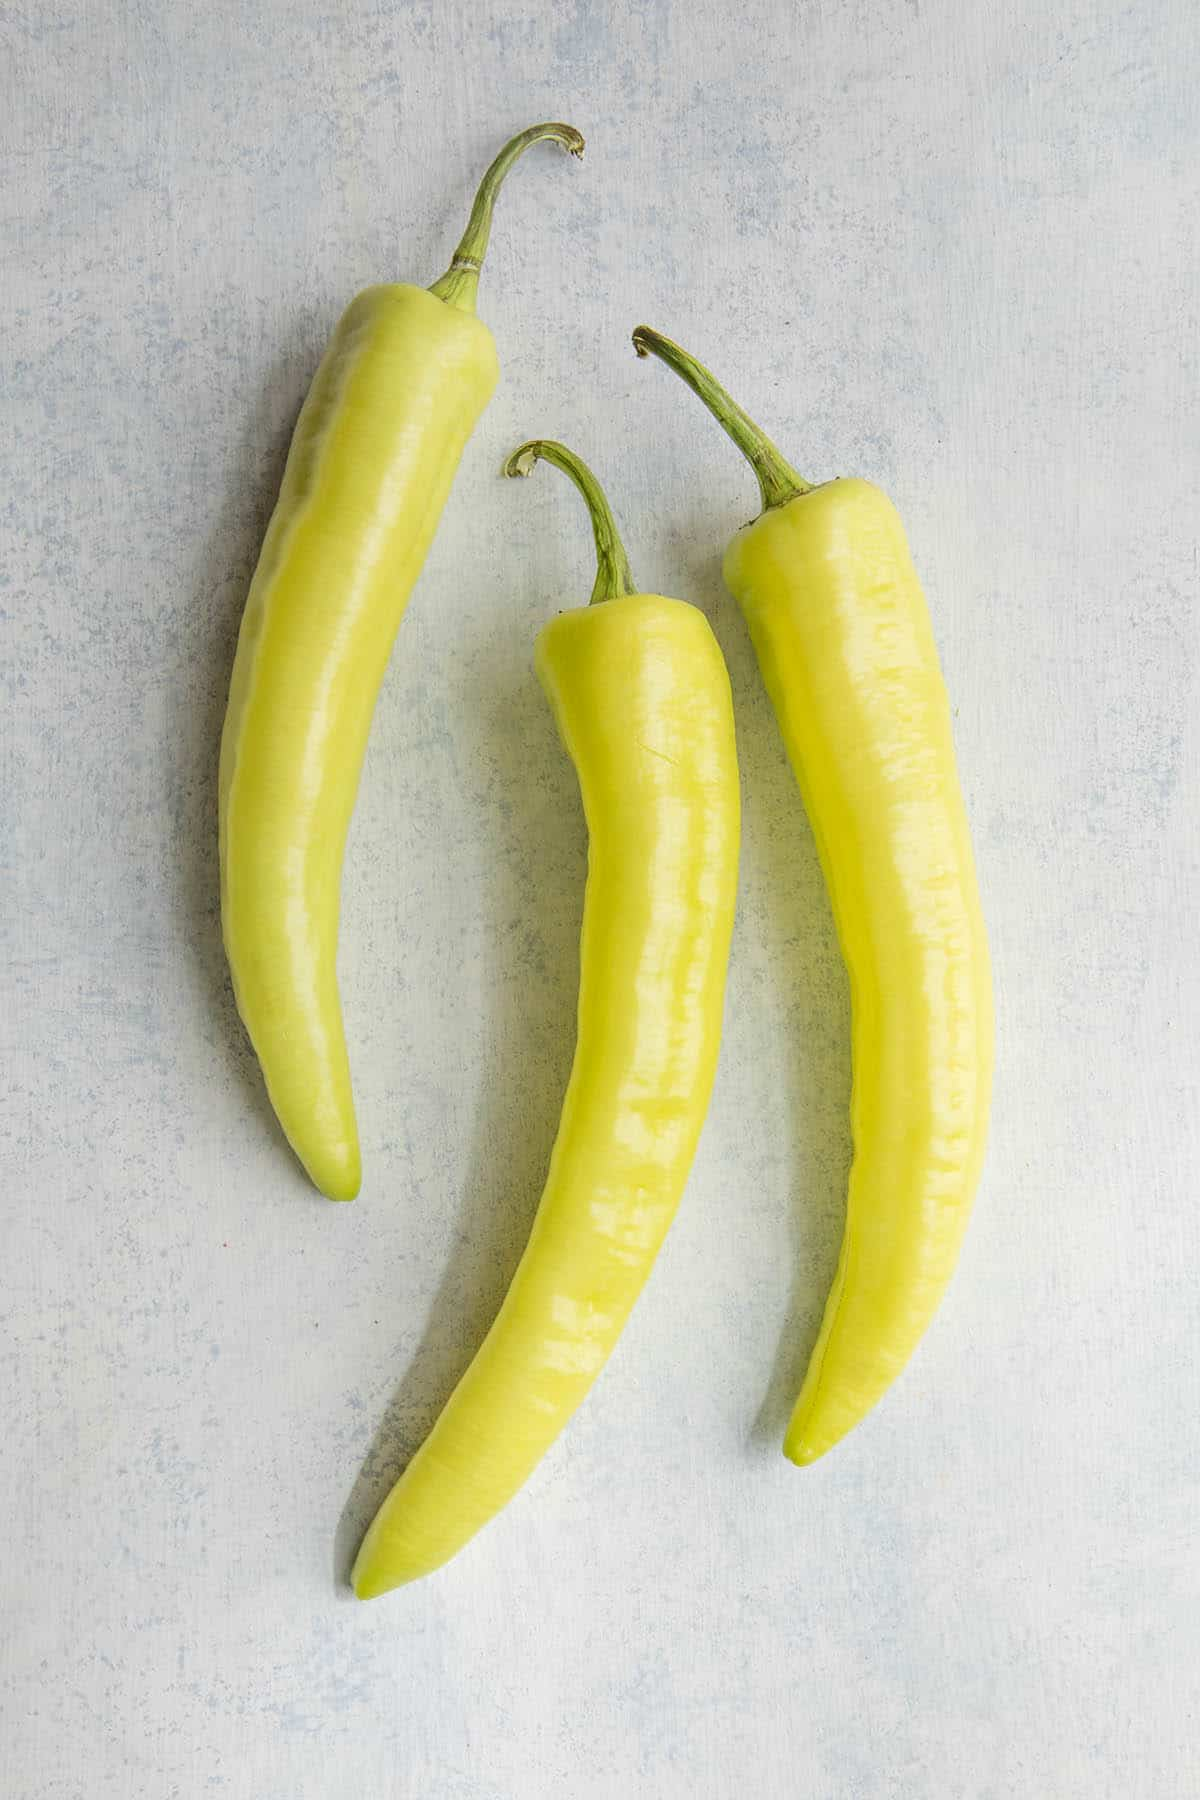 Hungarian Wax Peppers – All About Them